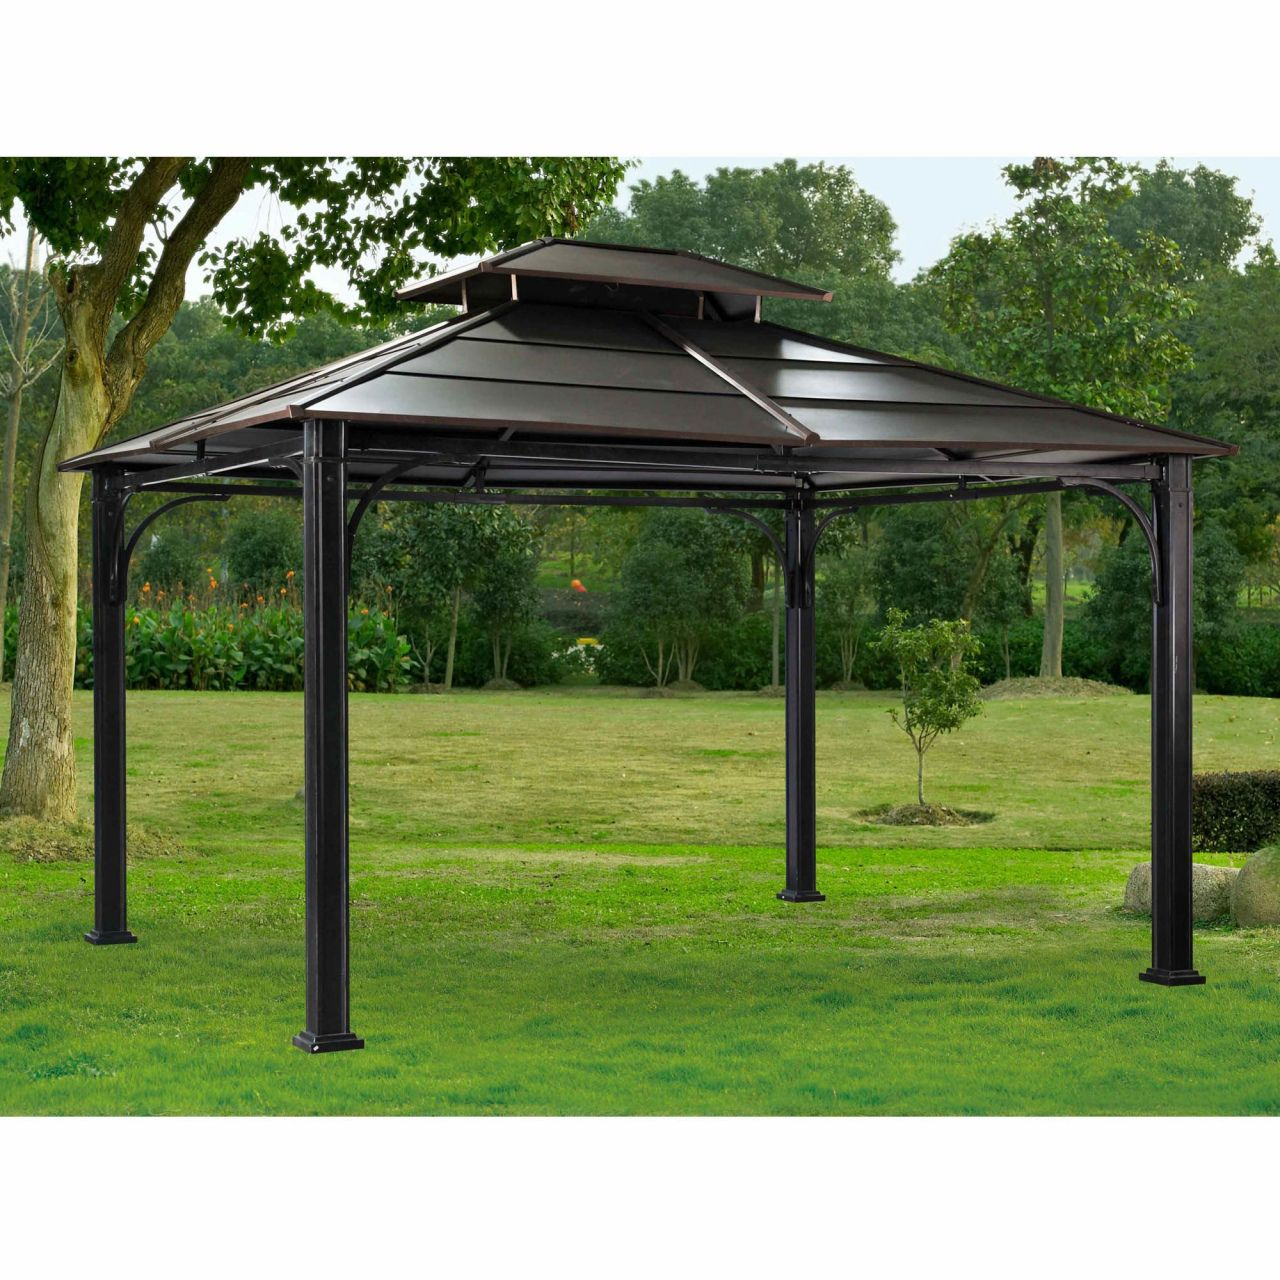 Concord Metal Roof Gazebo Installation In 2020 Gazebo Installation Patio Gazebo Hardtop Gazebo